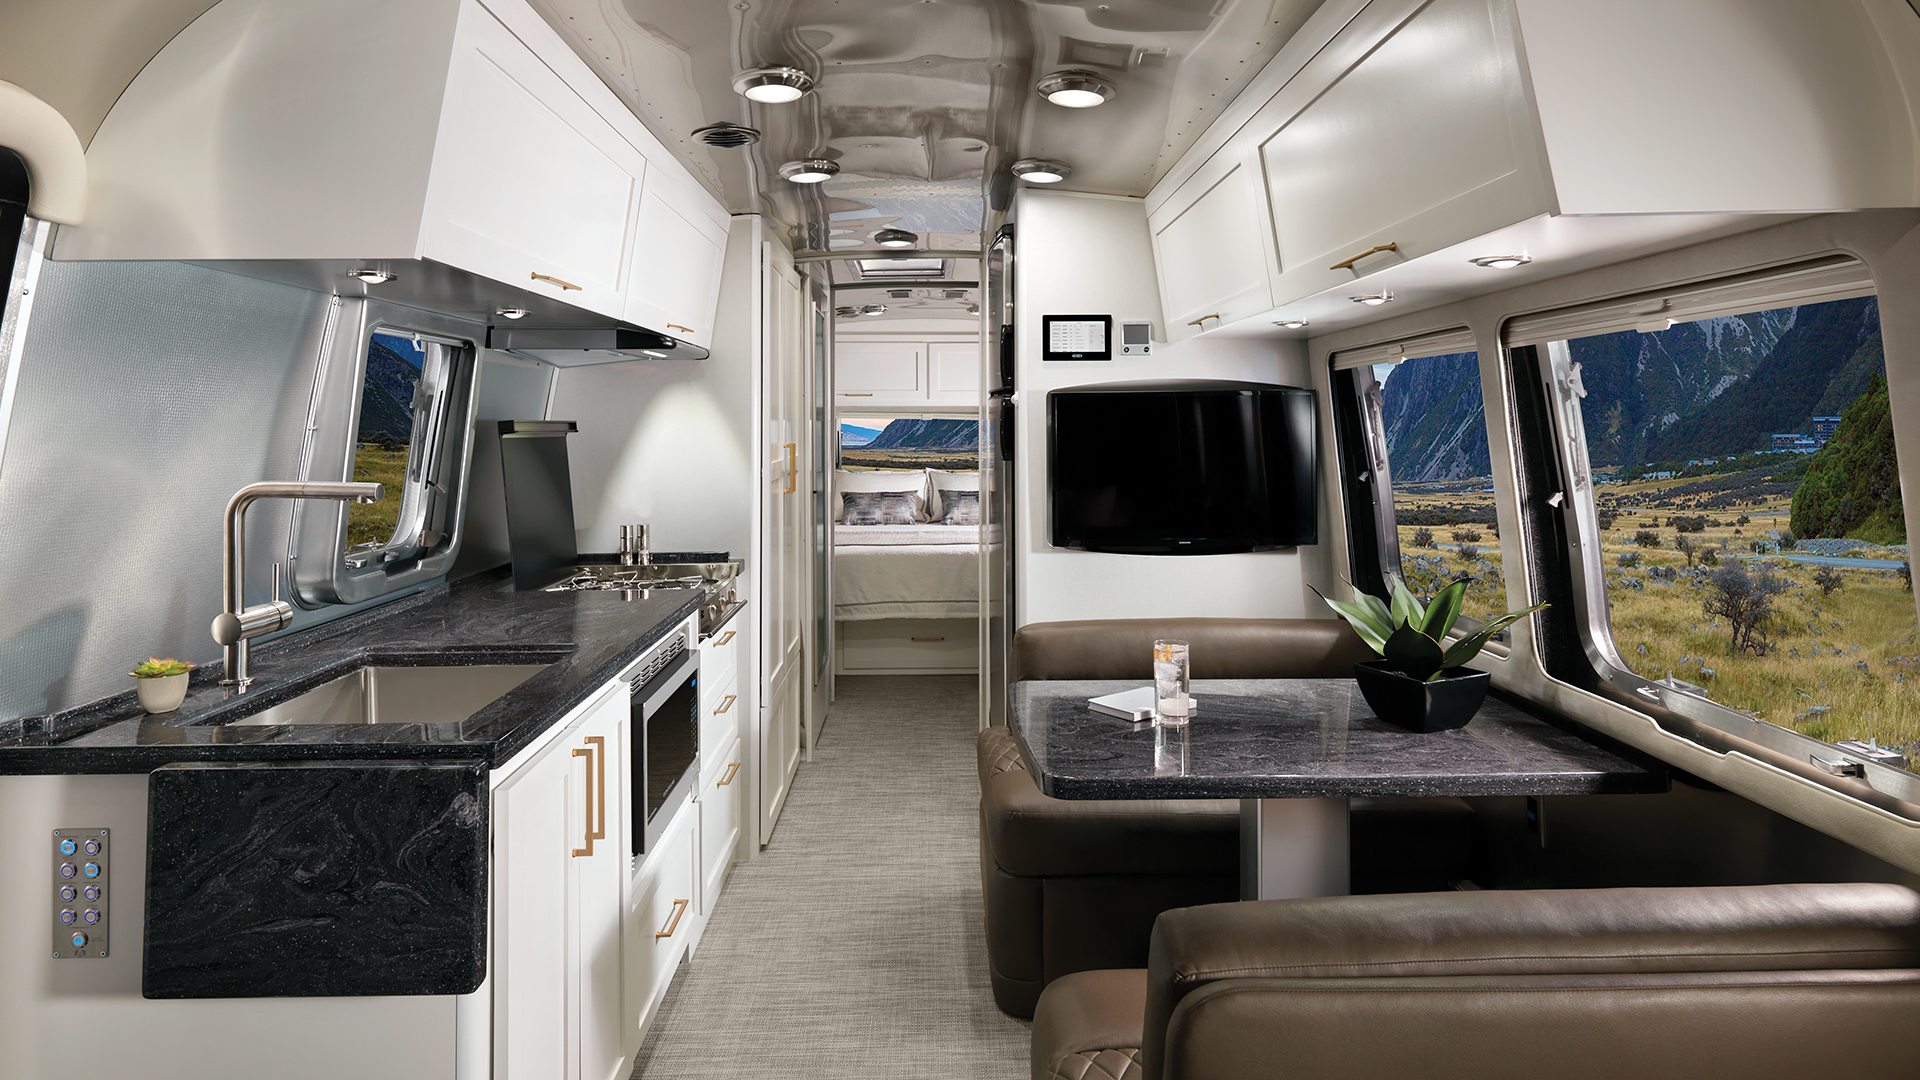 Airstream-Classic-30RB-Comfort-White-Cafe-Latte-Interior-Front-to-Back